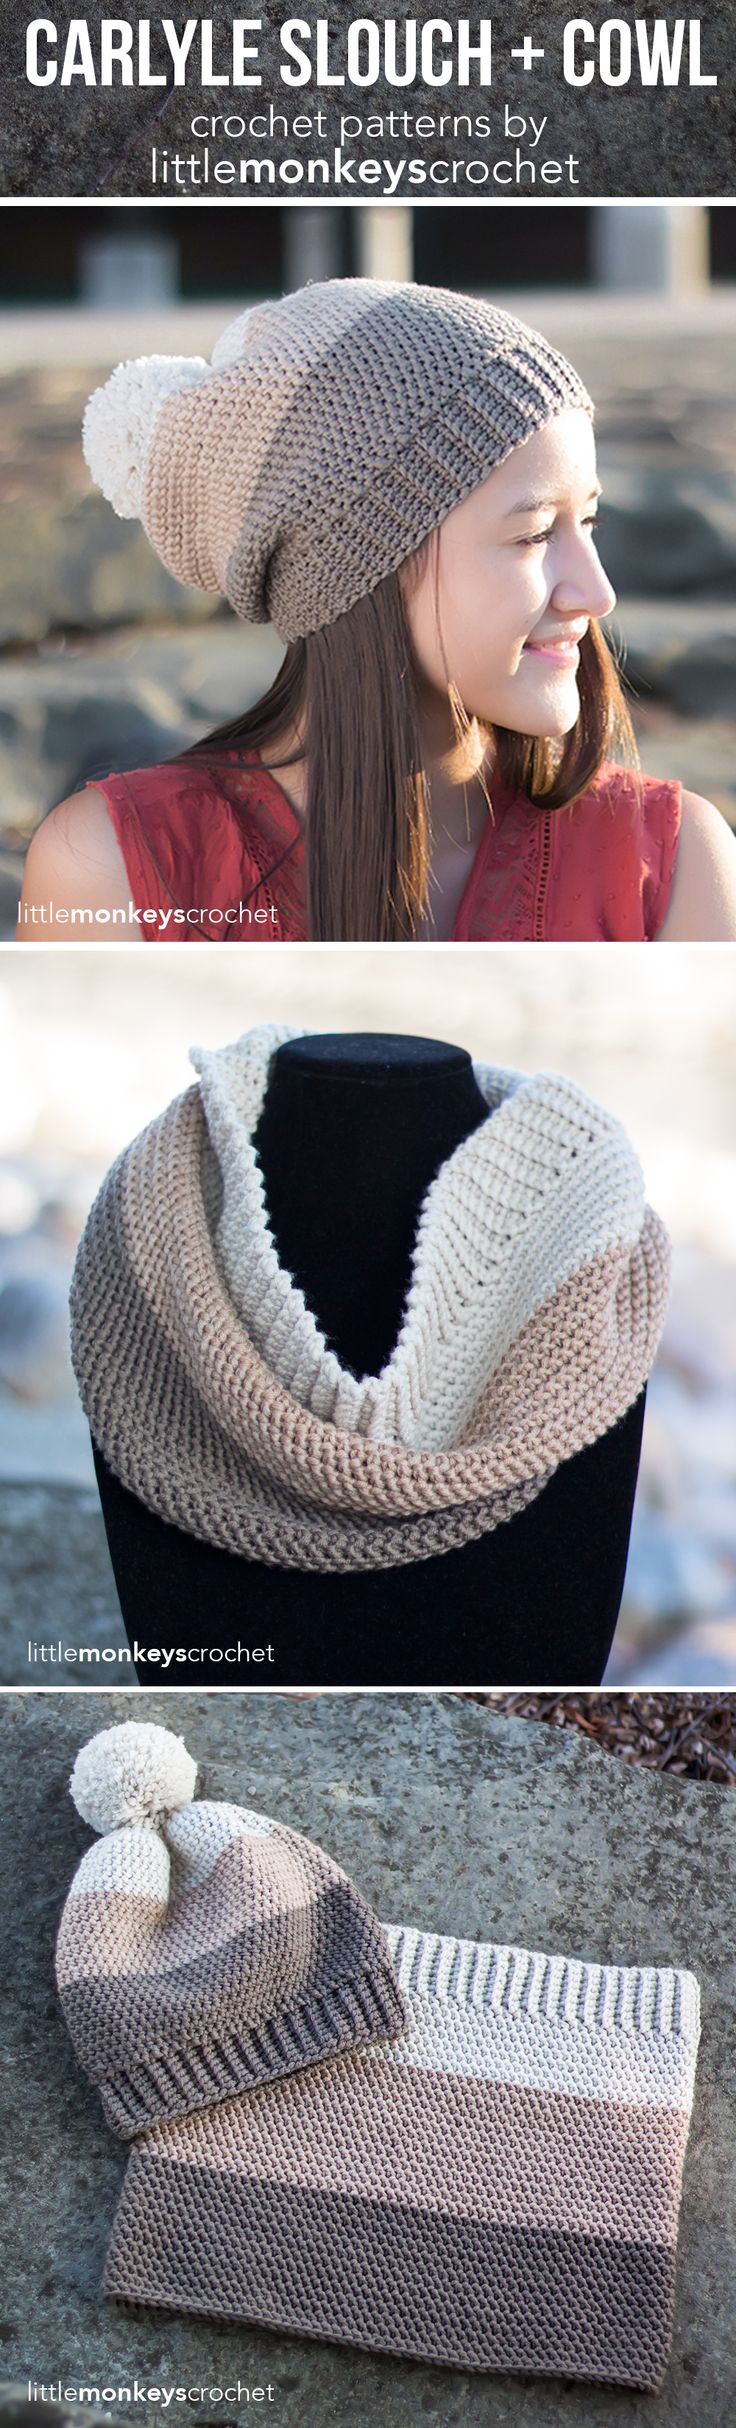 Carlyle Cowl + Slouch Hat Crochet Pattern Set | Free cowl scarf slouchy hat crochet patterns by Little Monkeys Crochet